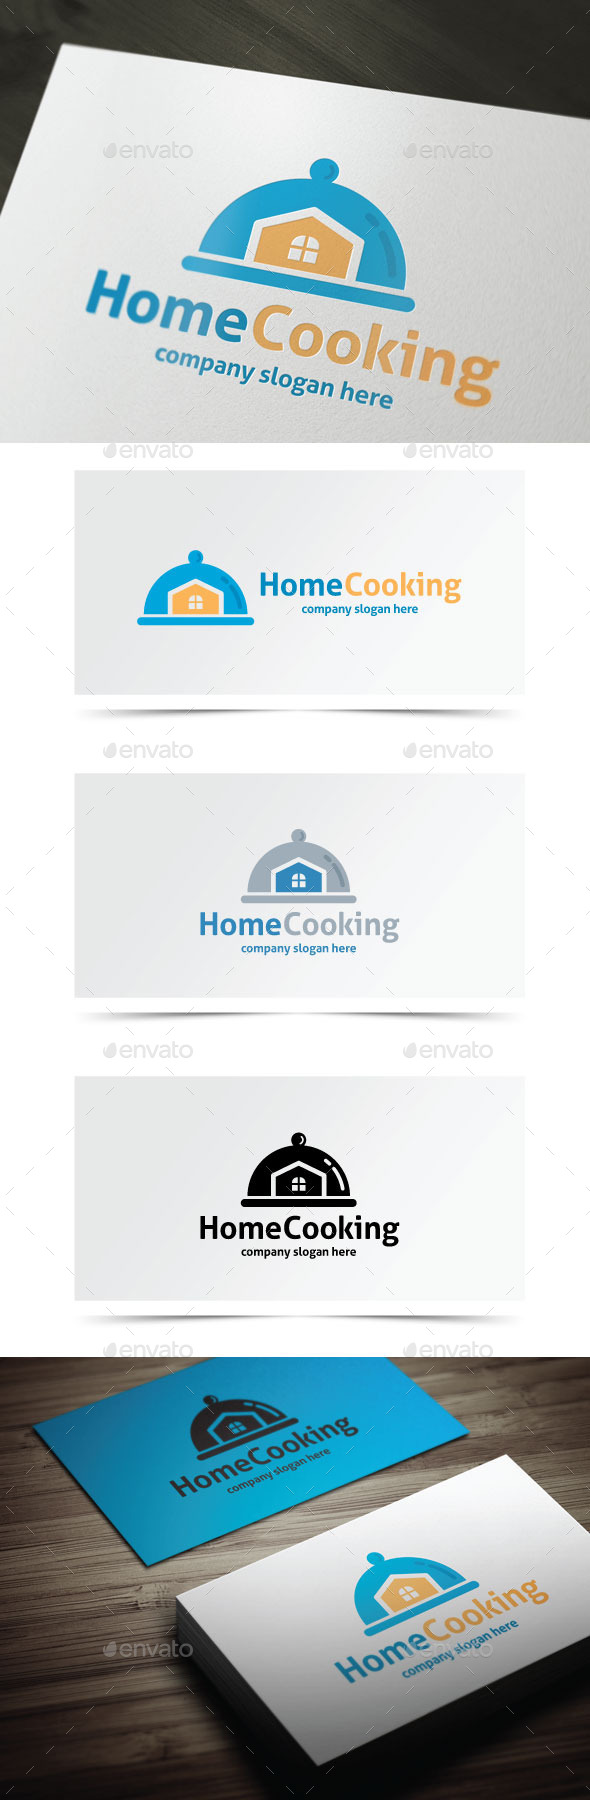 GraphicRiver Home Cooking 10577225